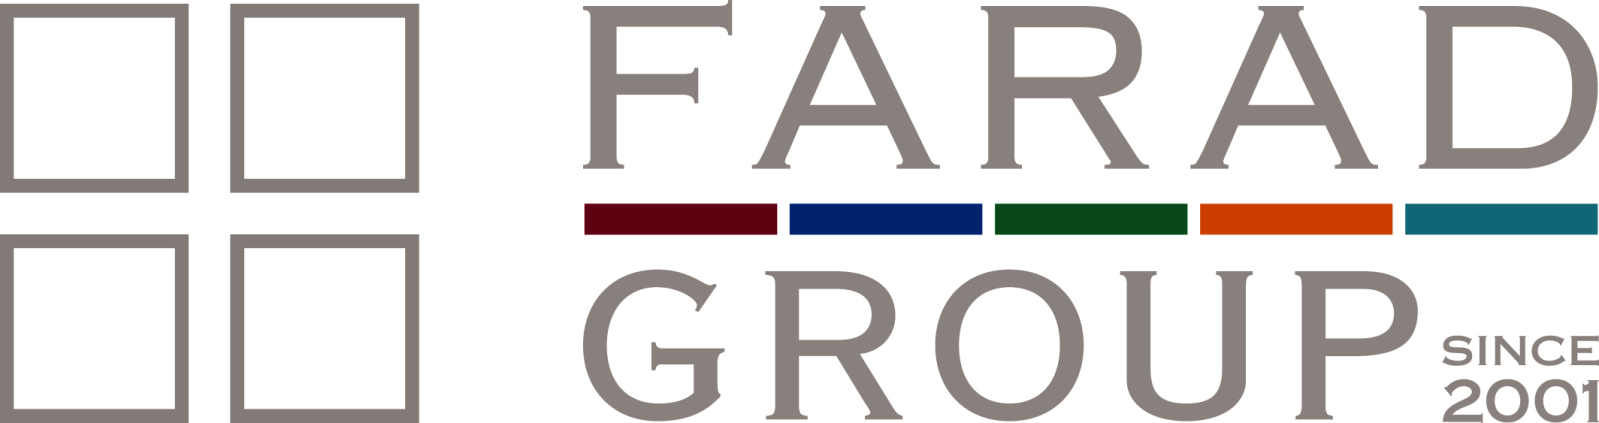 Logo for FARAD Group